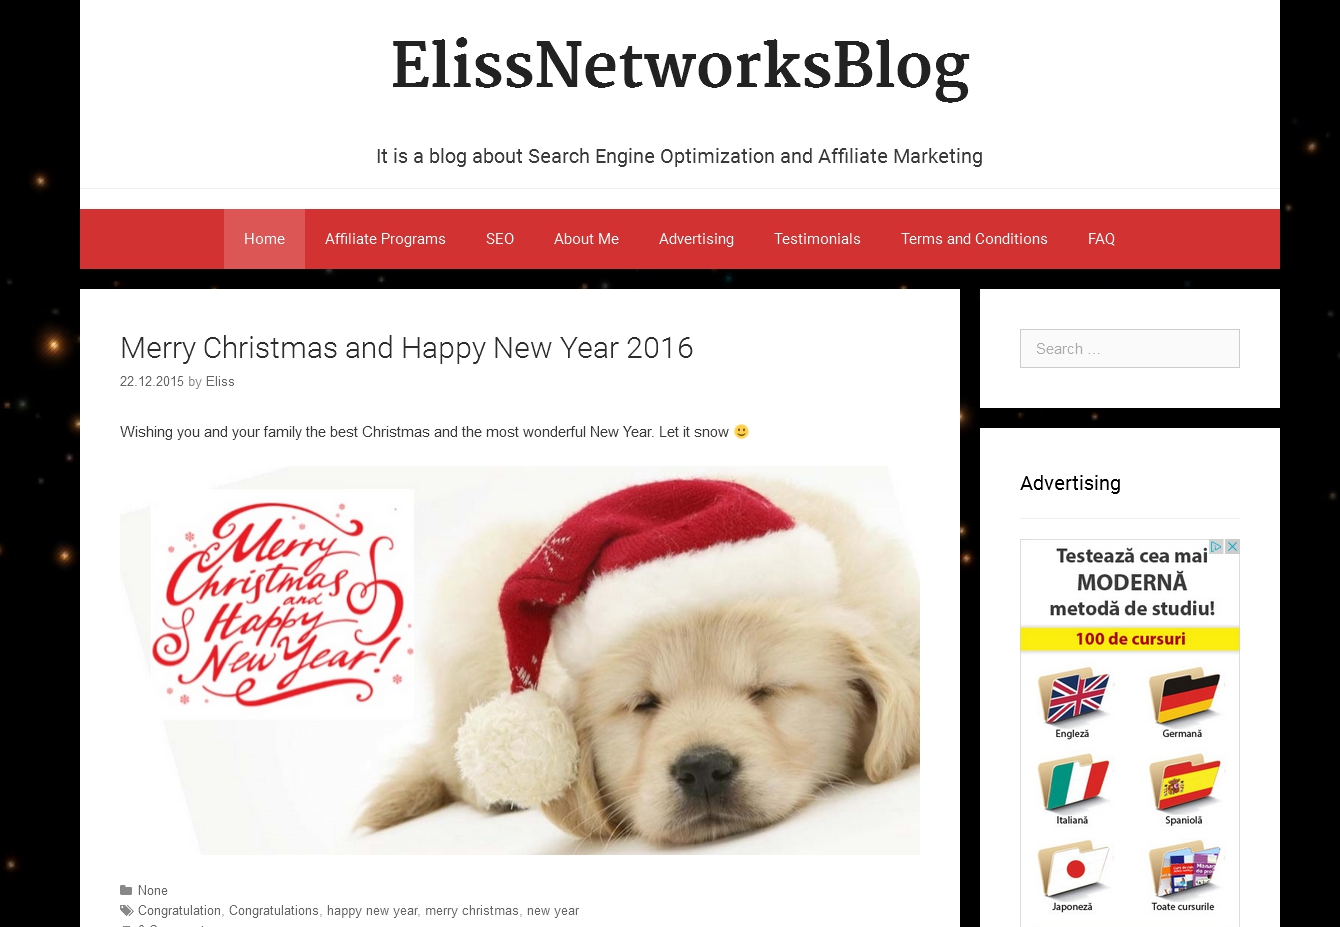 Elissnetworksblog.com - Blog about affiliate marketing and seo